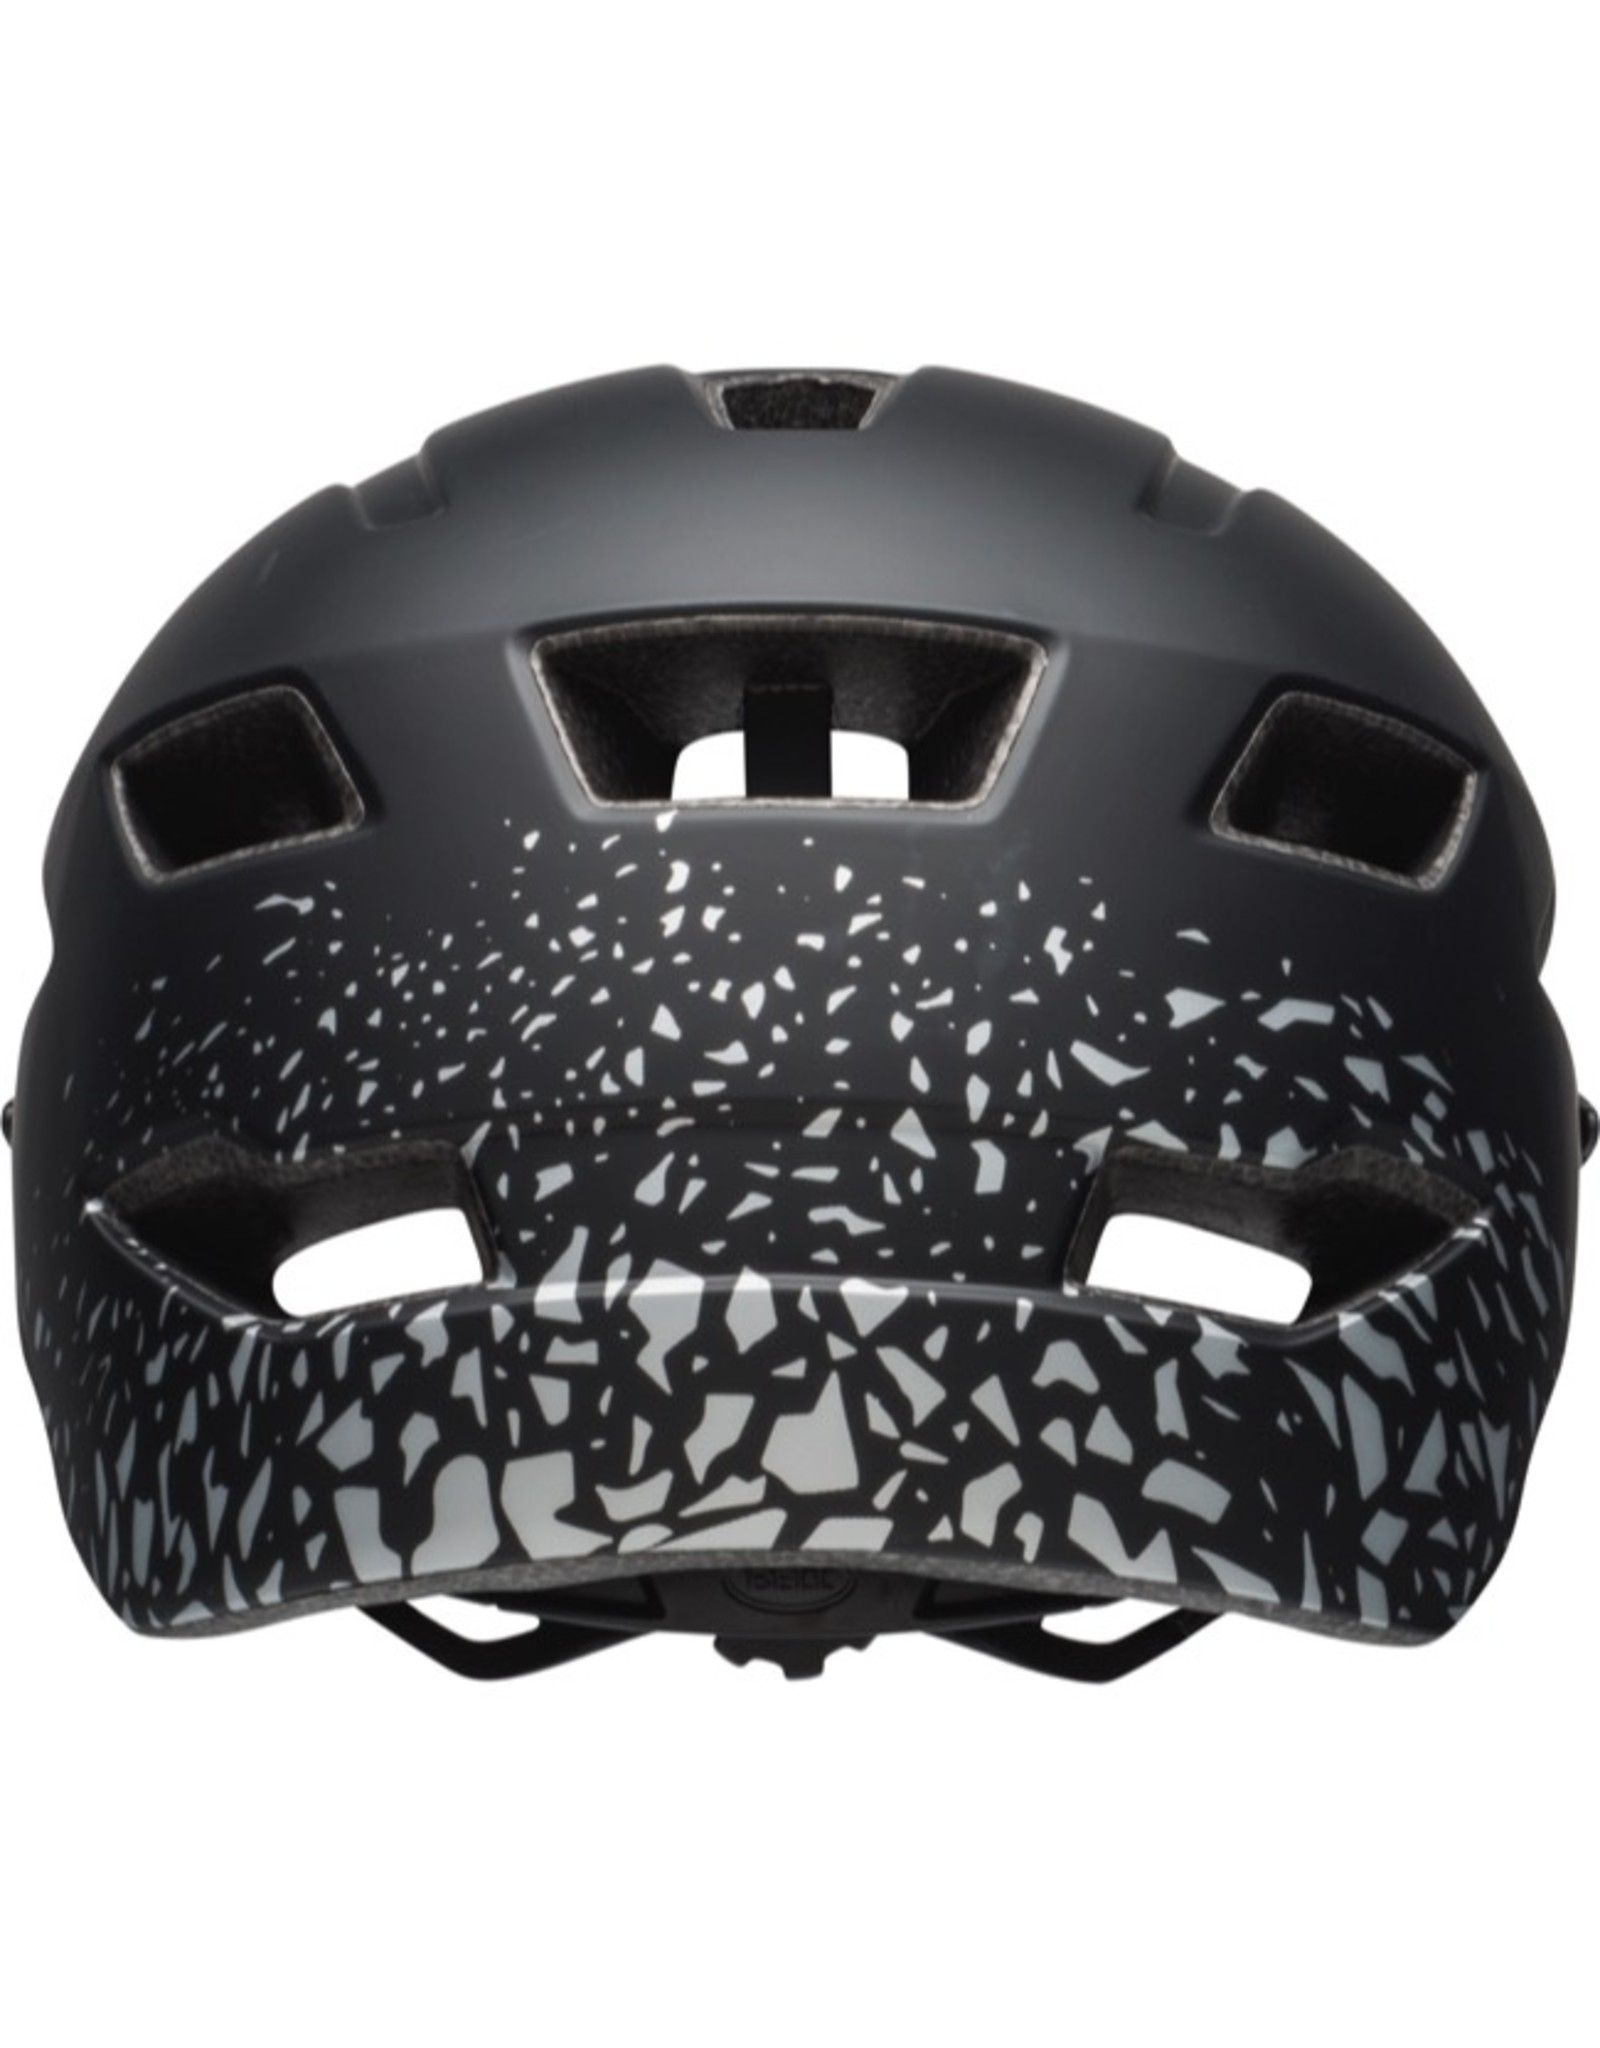 Bell Sidetrack helmet - Matt black and silver - youth size (50-57cm)